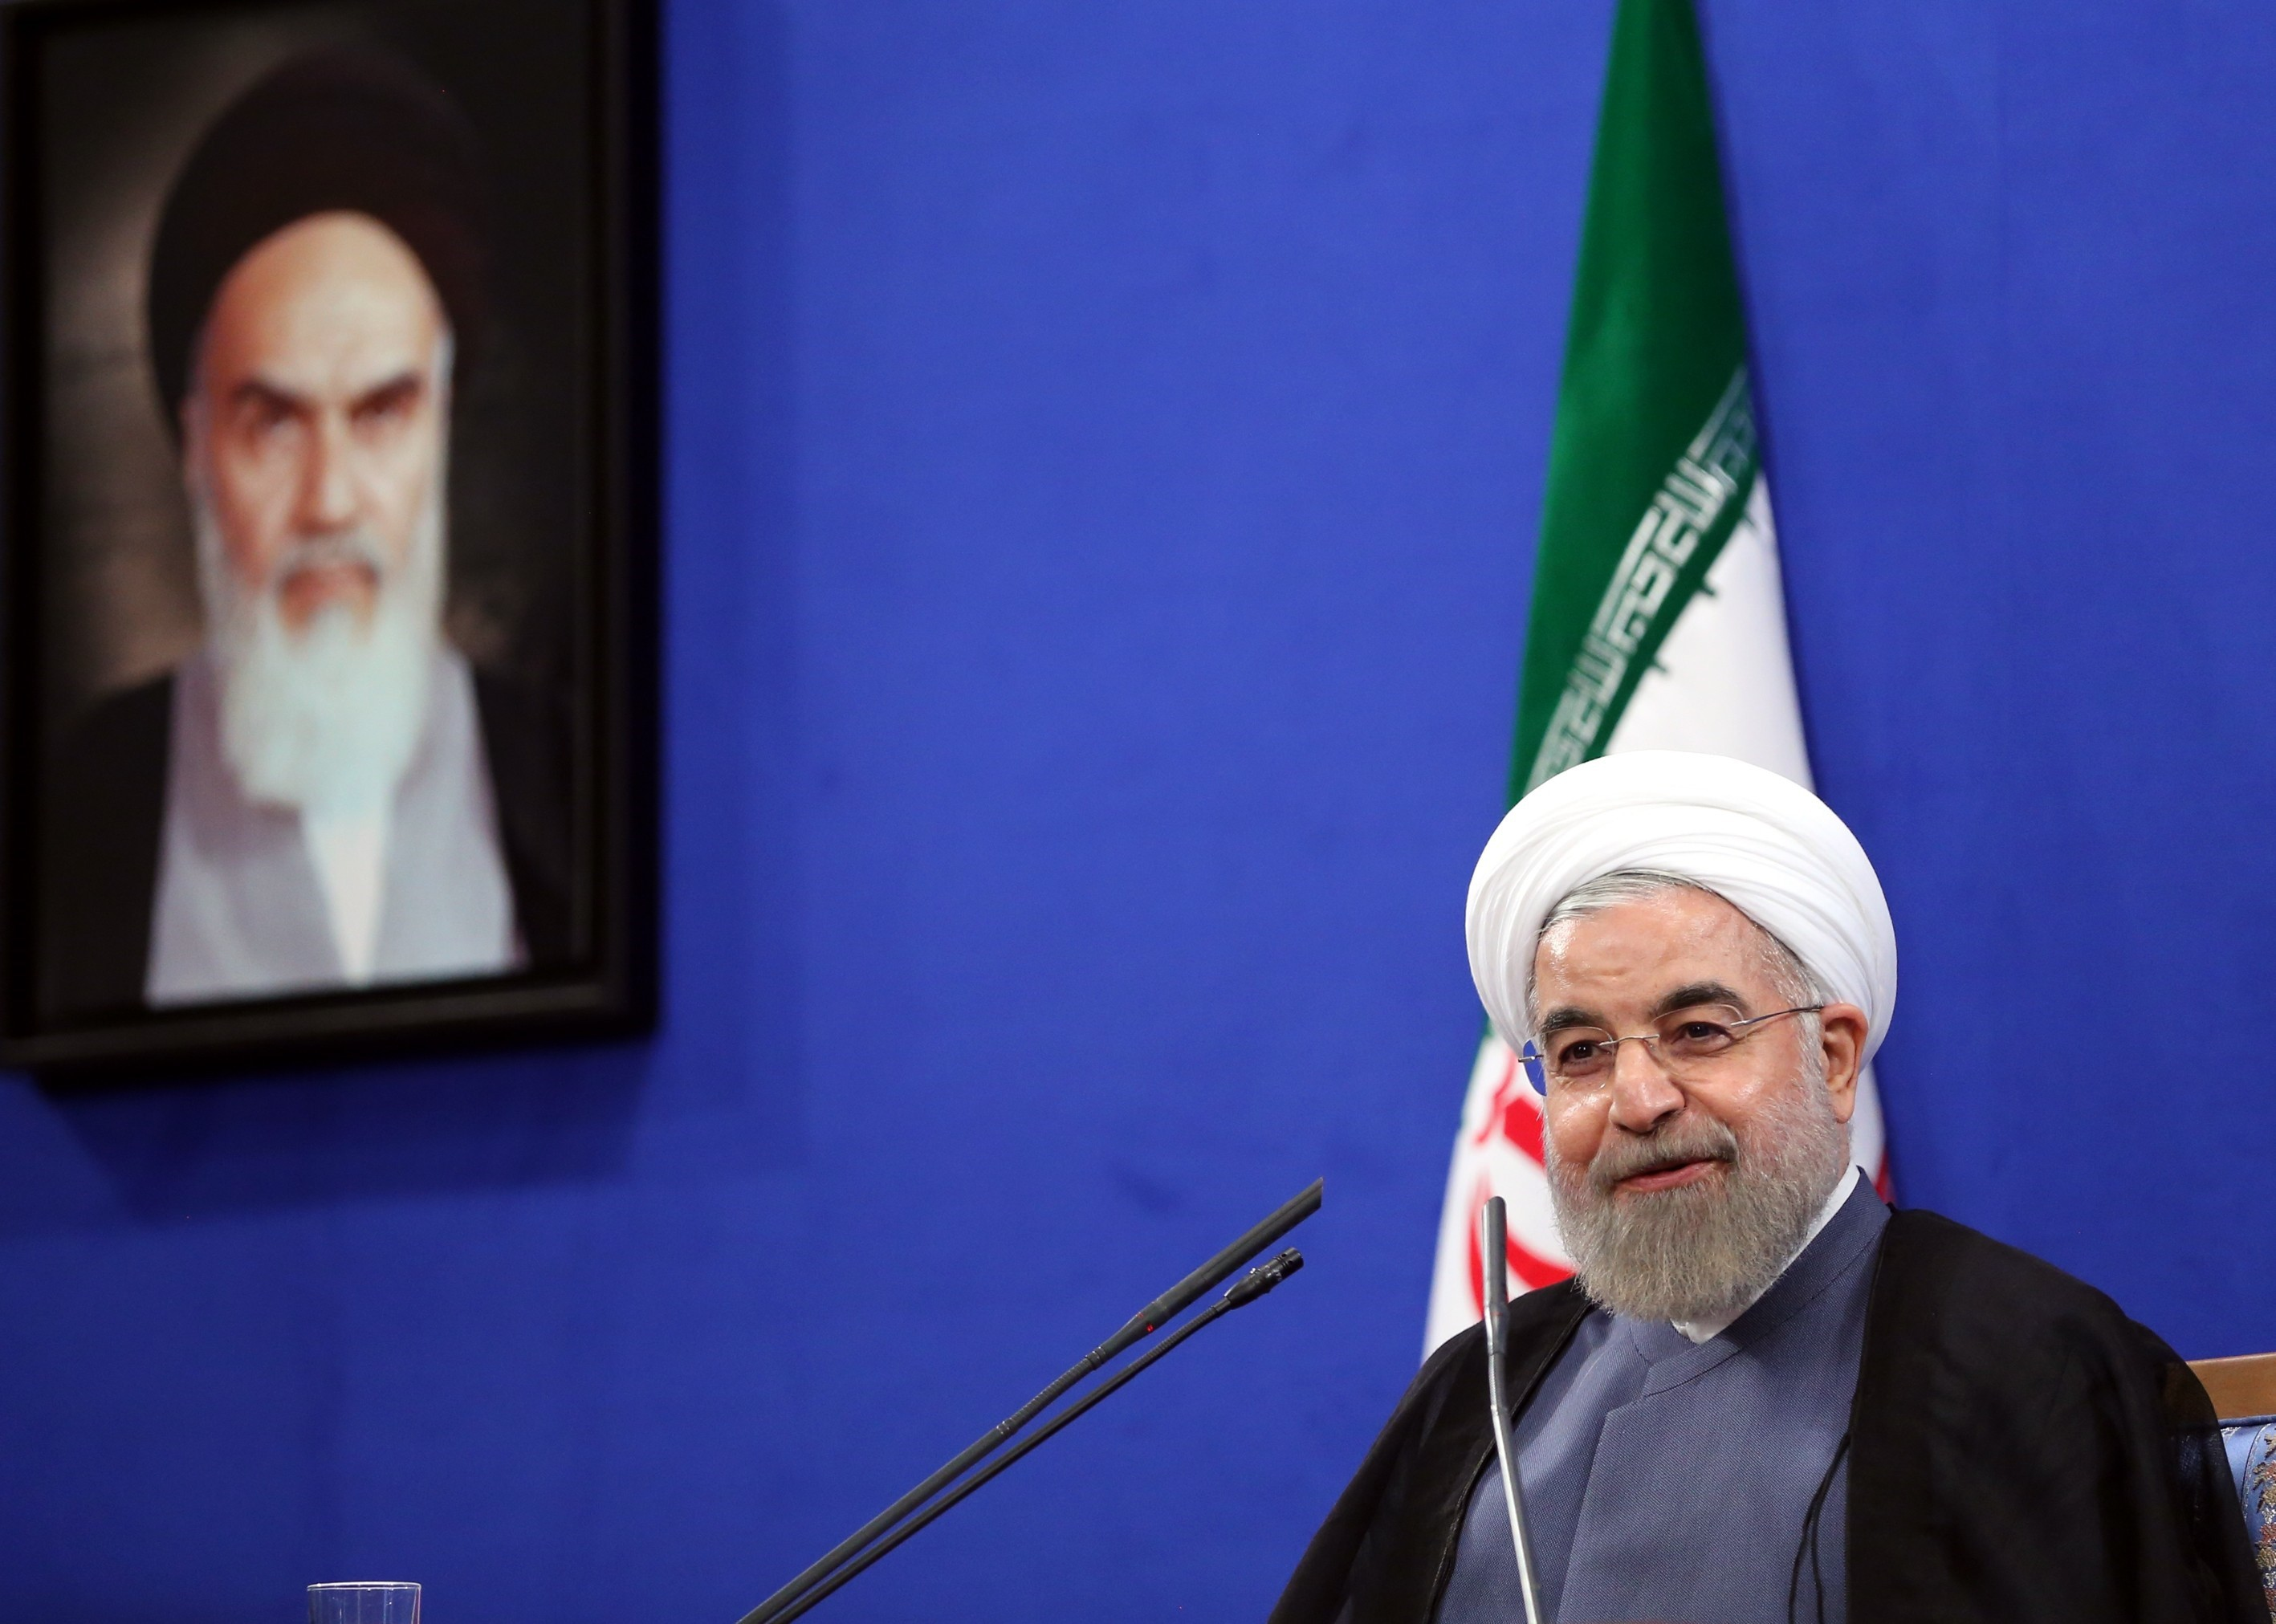 Iranian President Hassan Rouhani speaks during a press conference in Tehran, Iran on June 13, 2015.